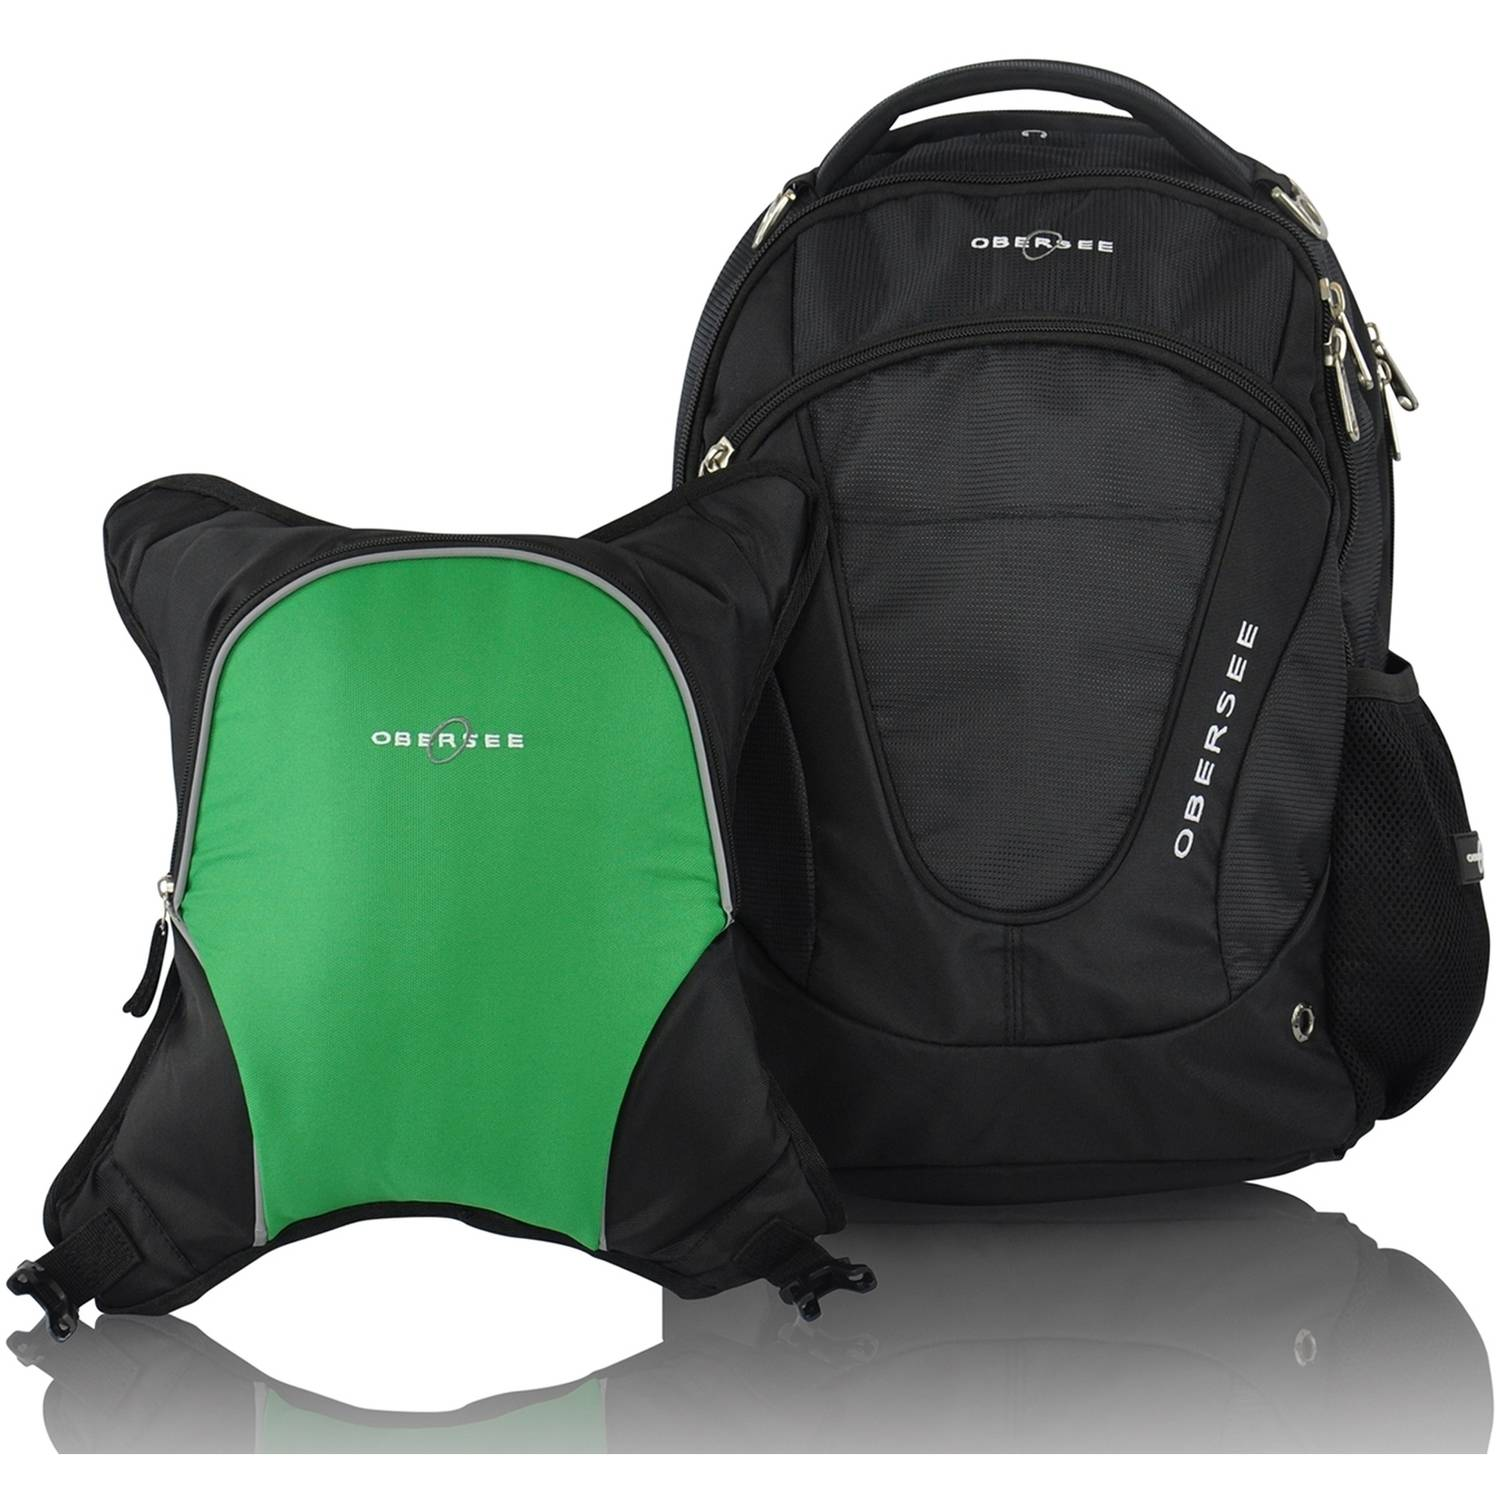 Obersee Oslo Diaper Bag Backpack and Cooler, Black Green by Obersee